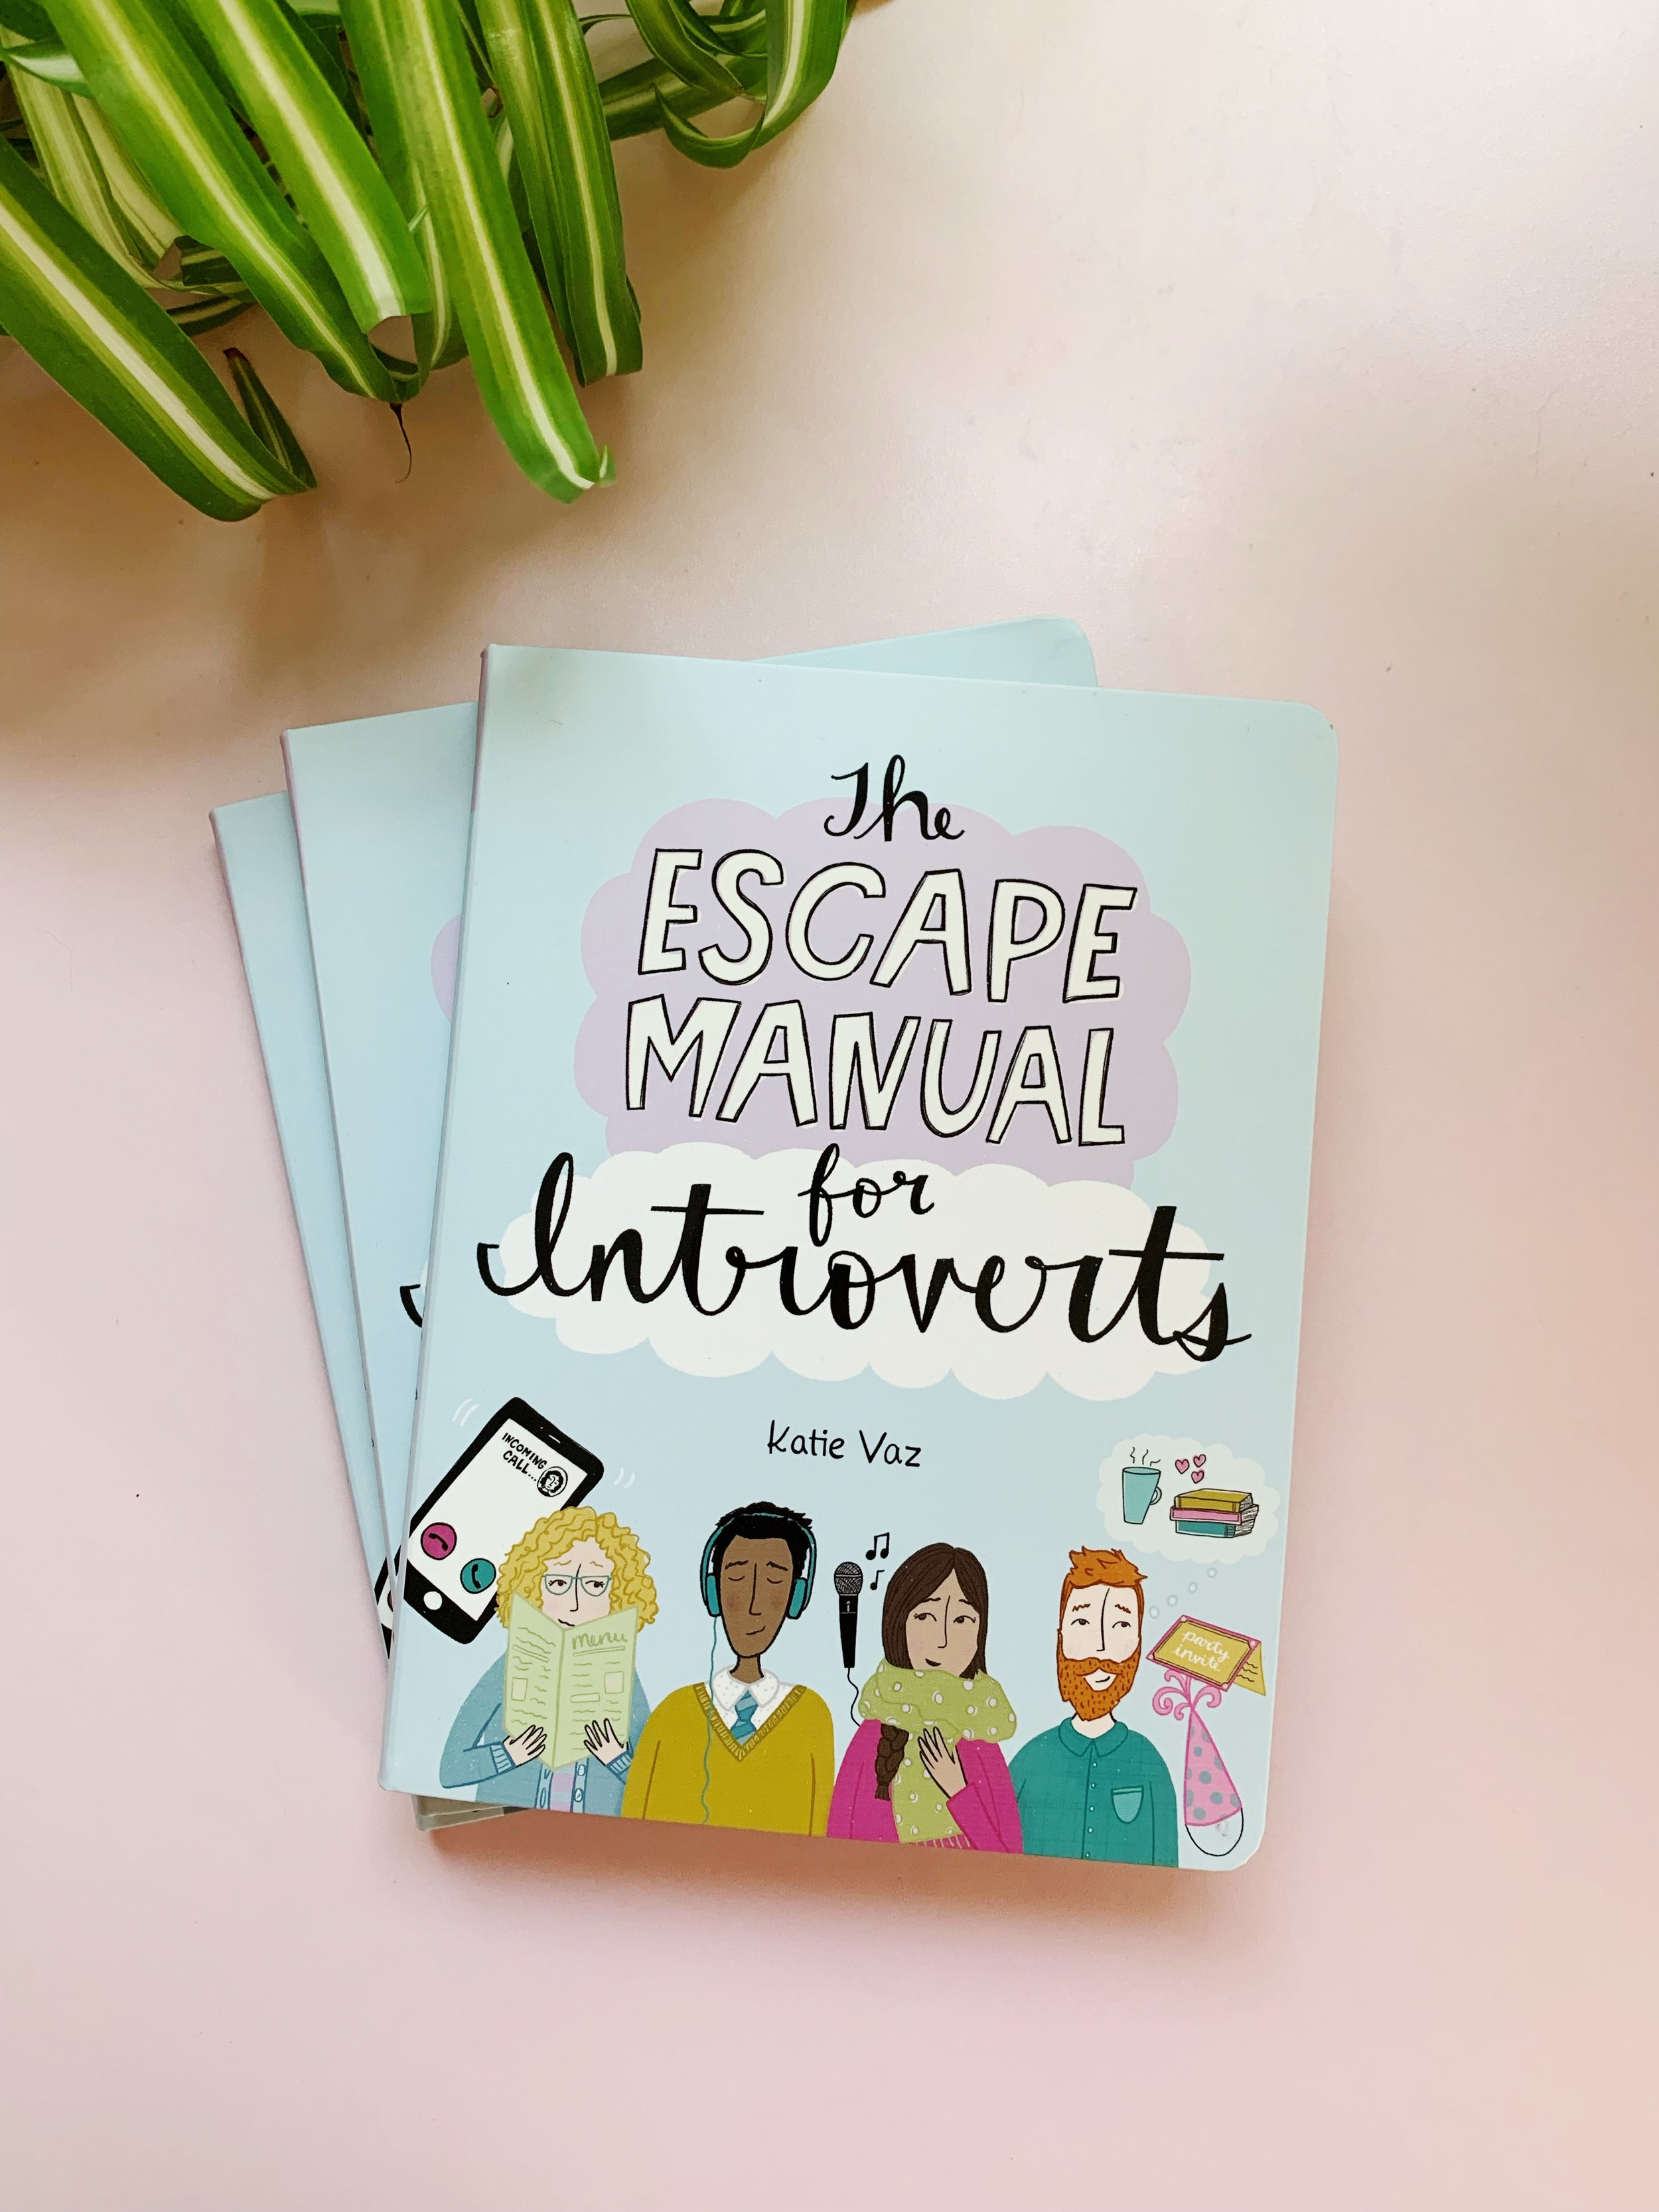 The Escape Manual for Introverts book